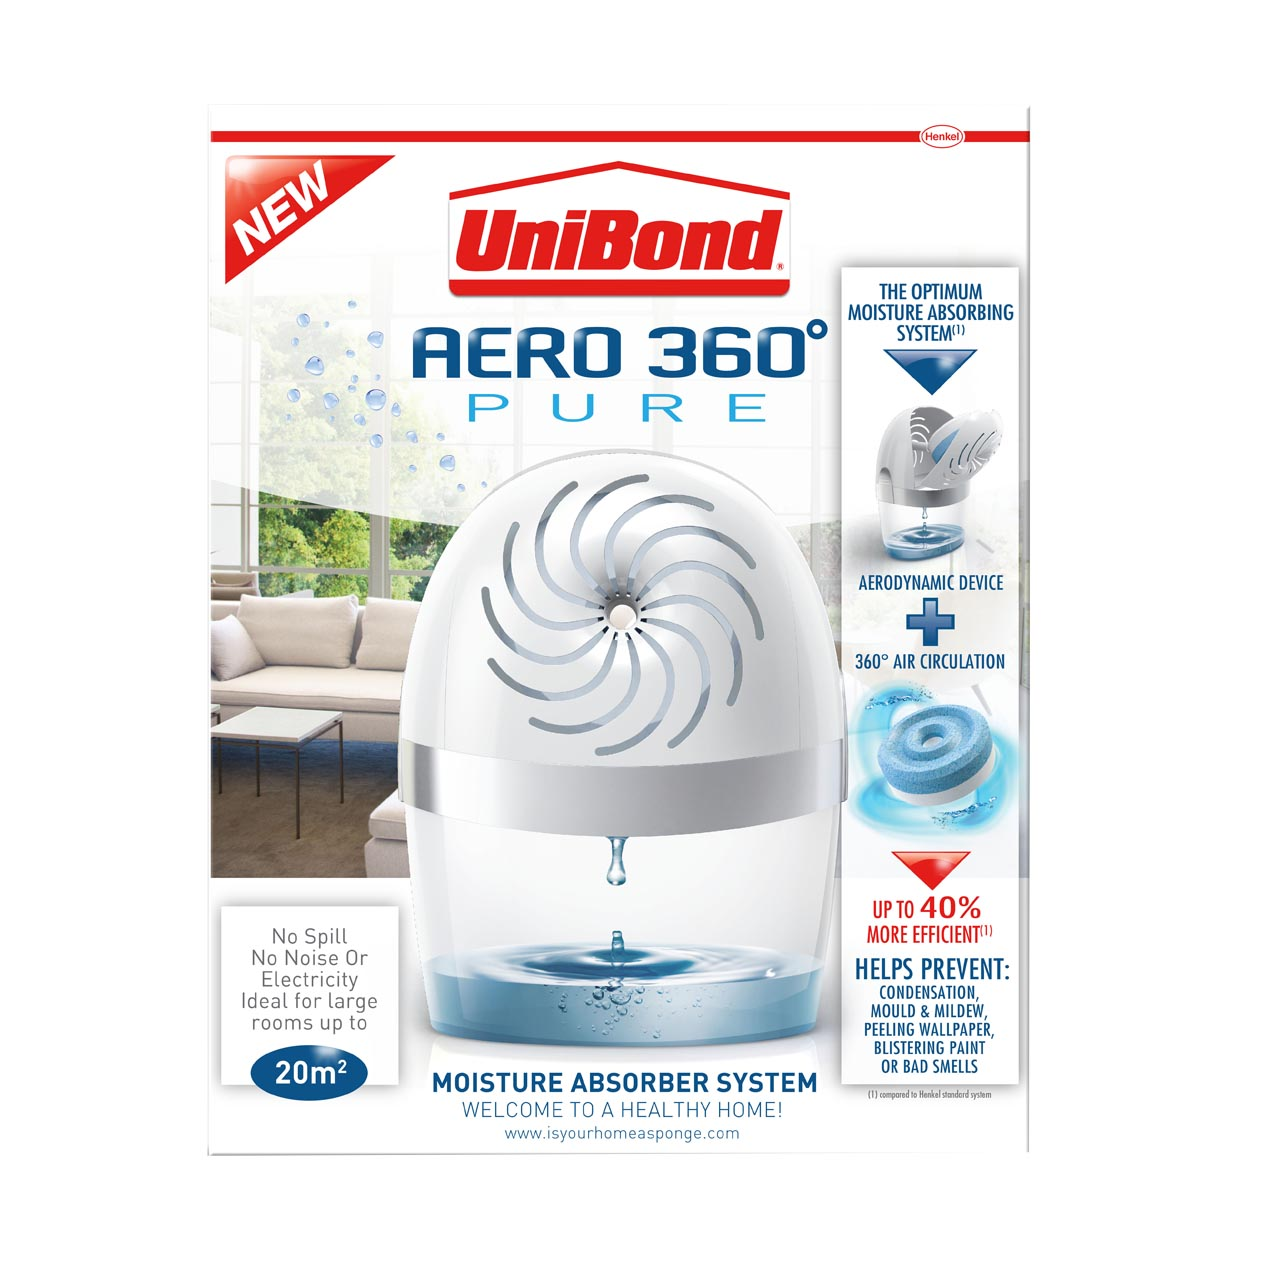 Unibond Aero 360 Pure Humidity Device with Bonus Tablets